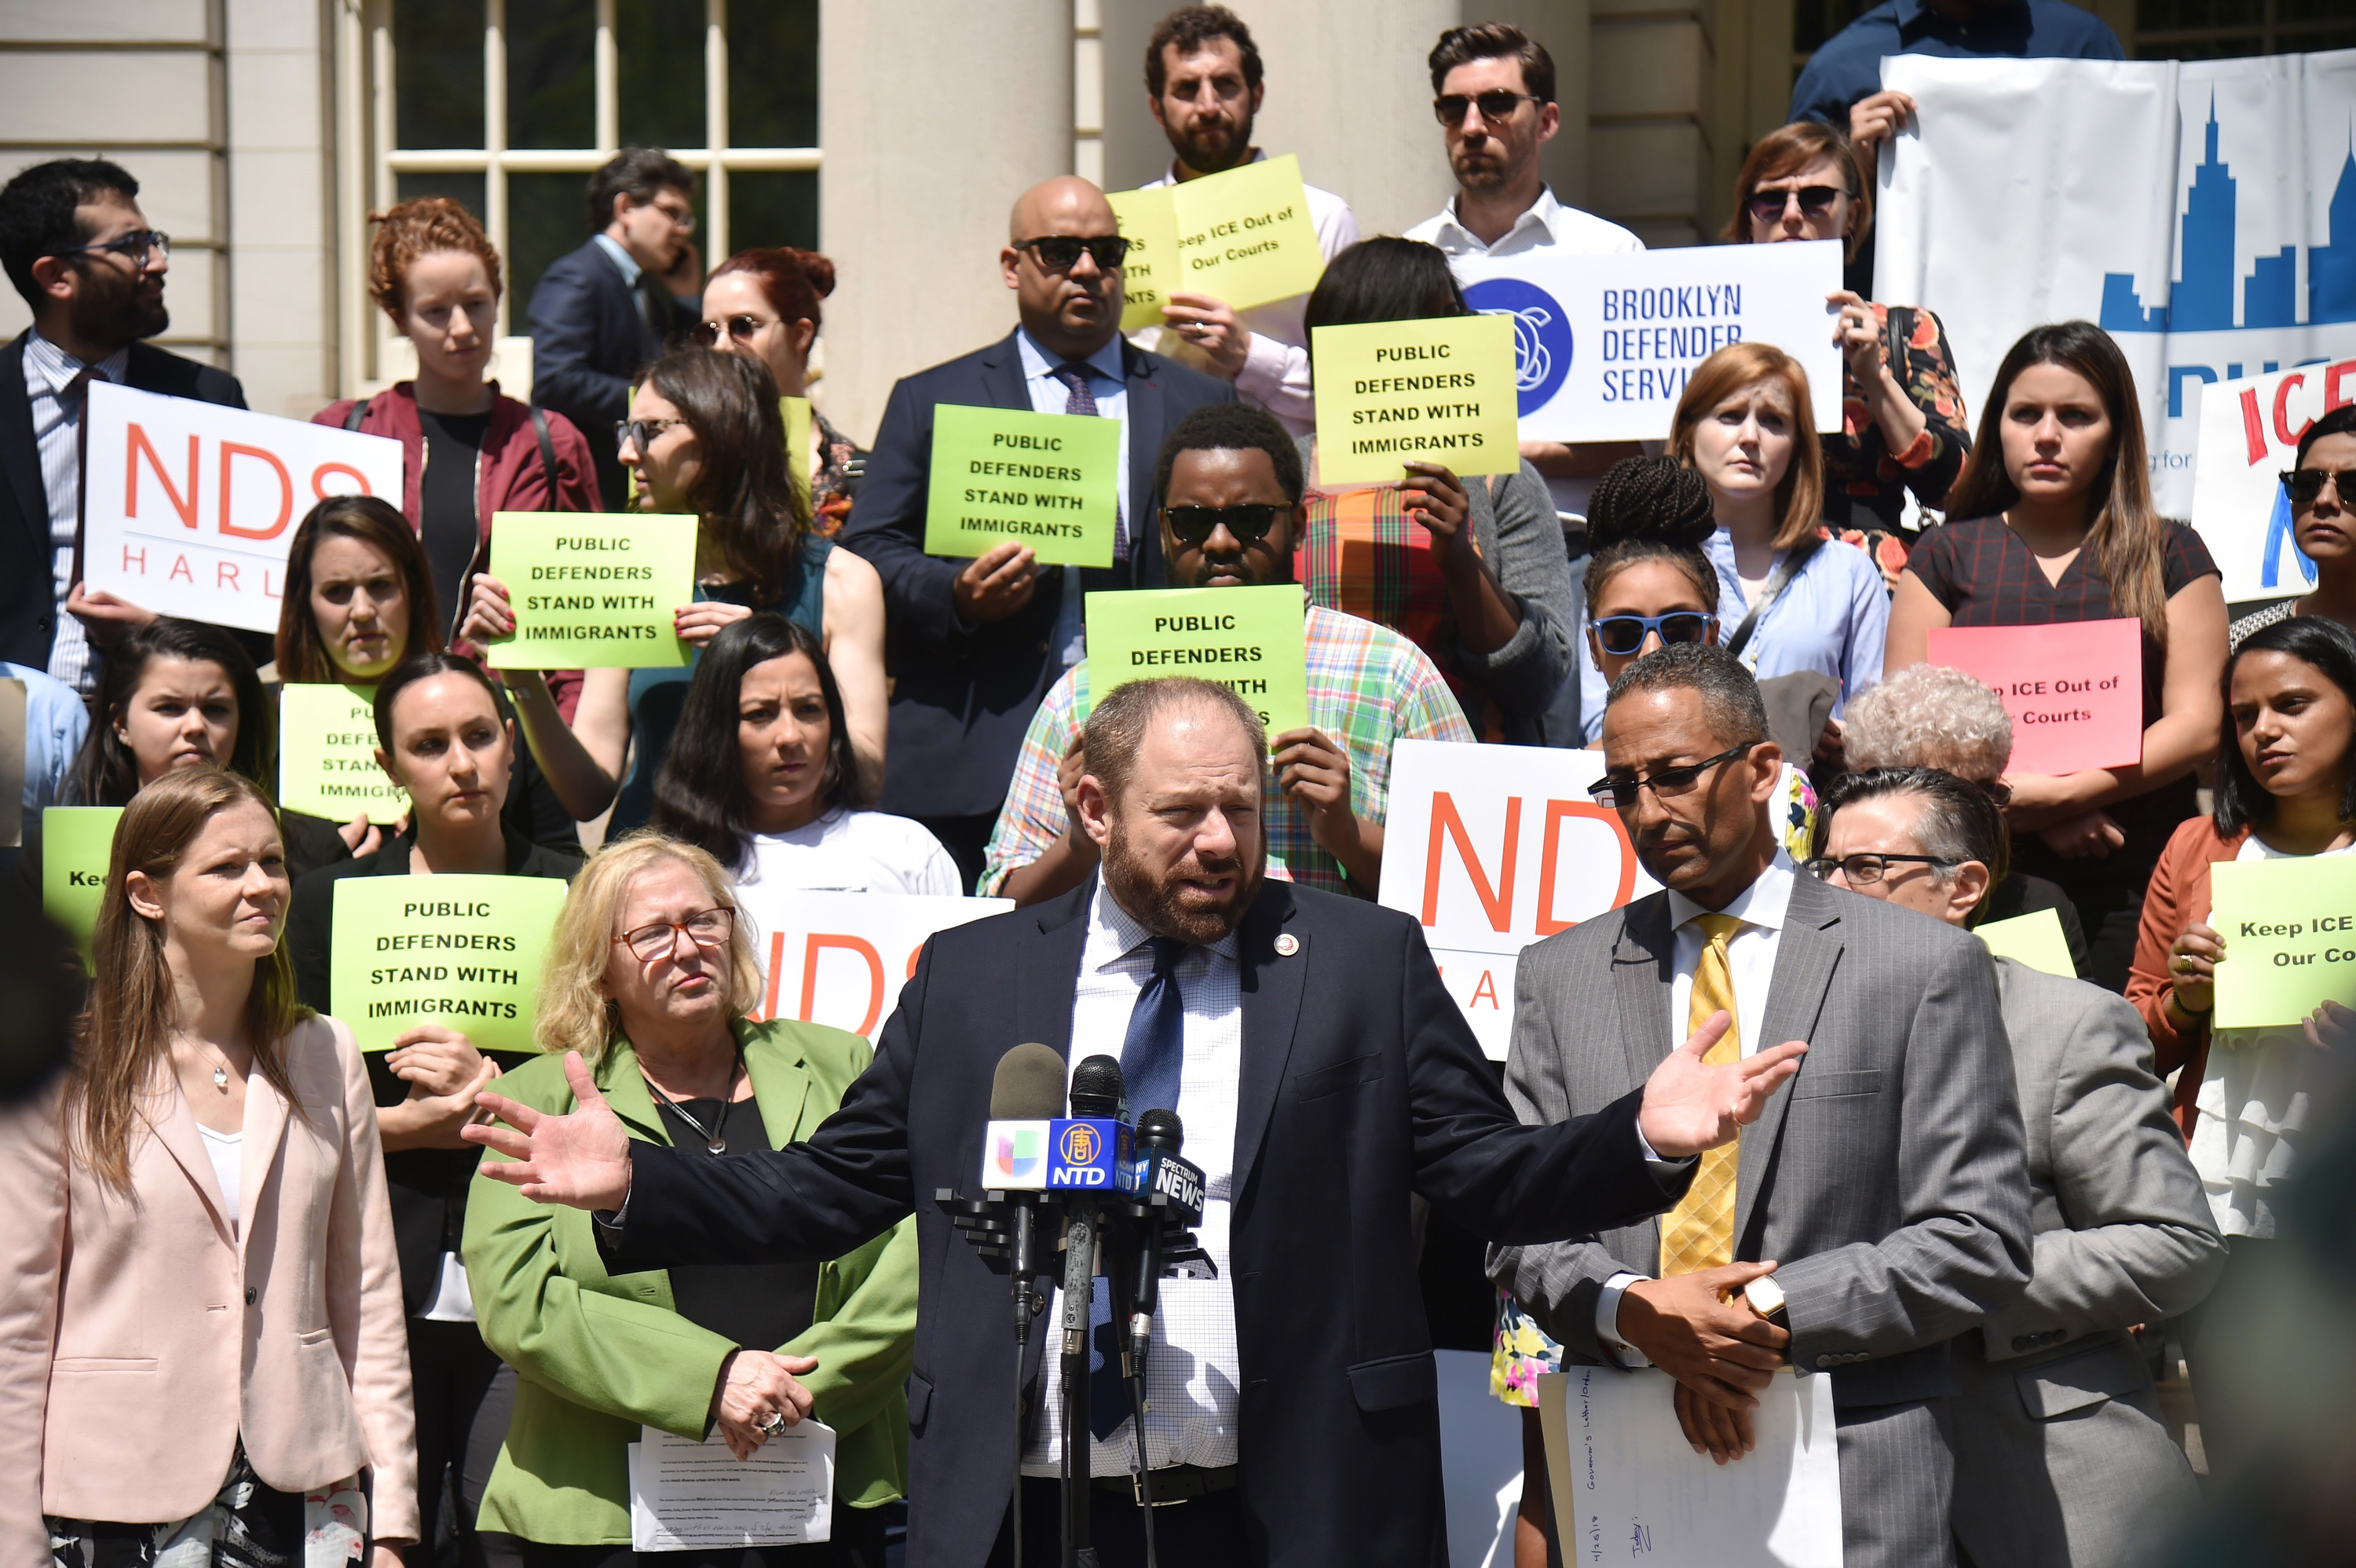 New York City council member Rory Lancman surounded by public defenders and advocates give a press conference to demand to the Chief judge DiFiore to prohibit ICE arrests in all courthouses, except when authorized by a judicial warrant, in New York, on May 9, 2018. (Photo by HECTOR RETAMAL / AFP)(Photo credit should read HECTOR RETAMAL/AFP/Getty Images)